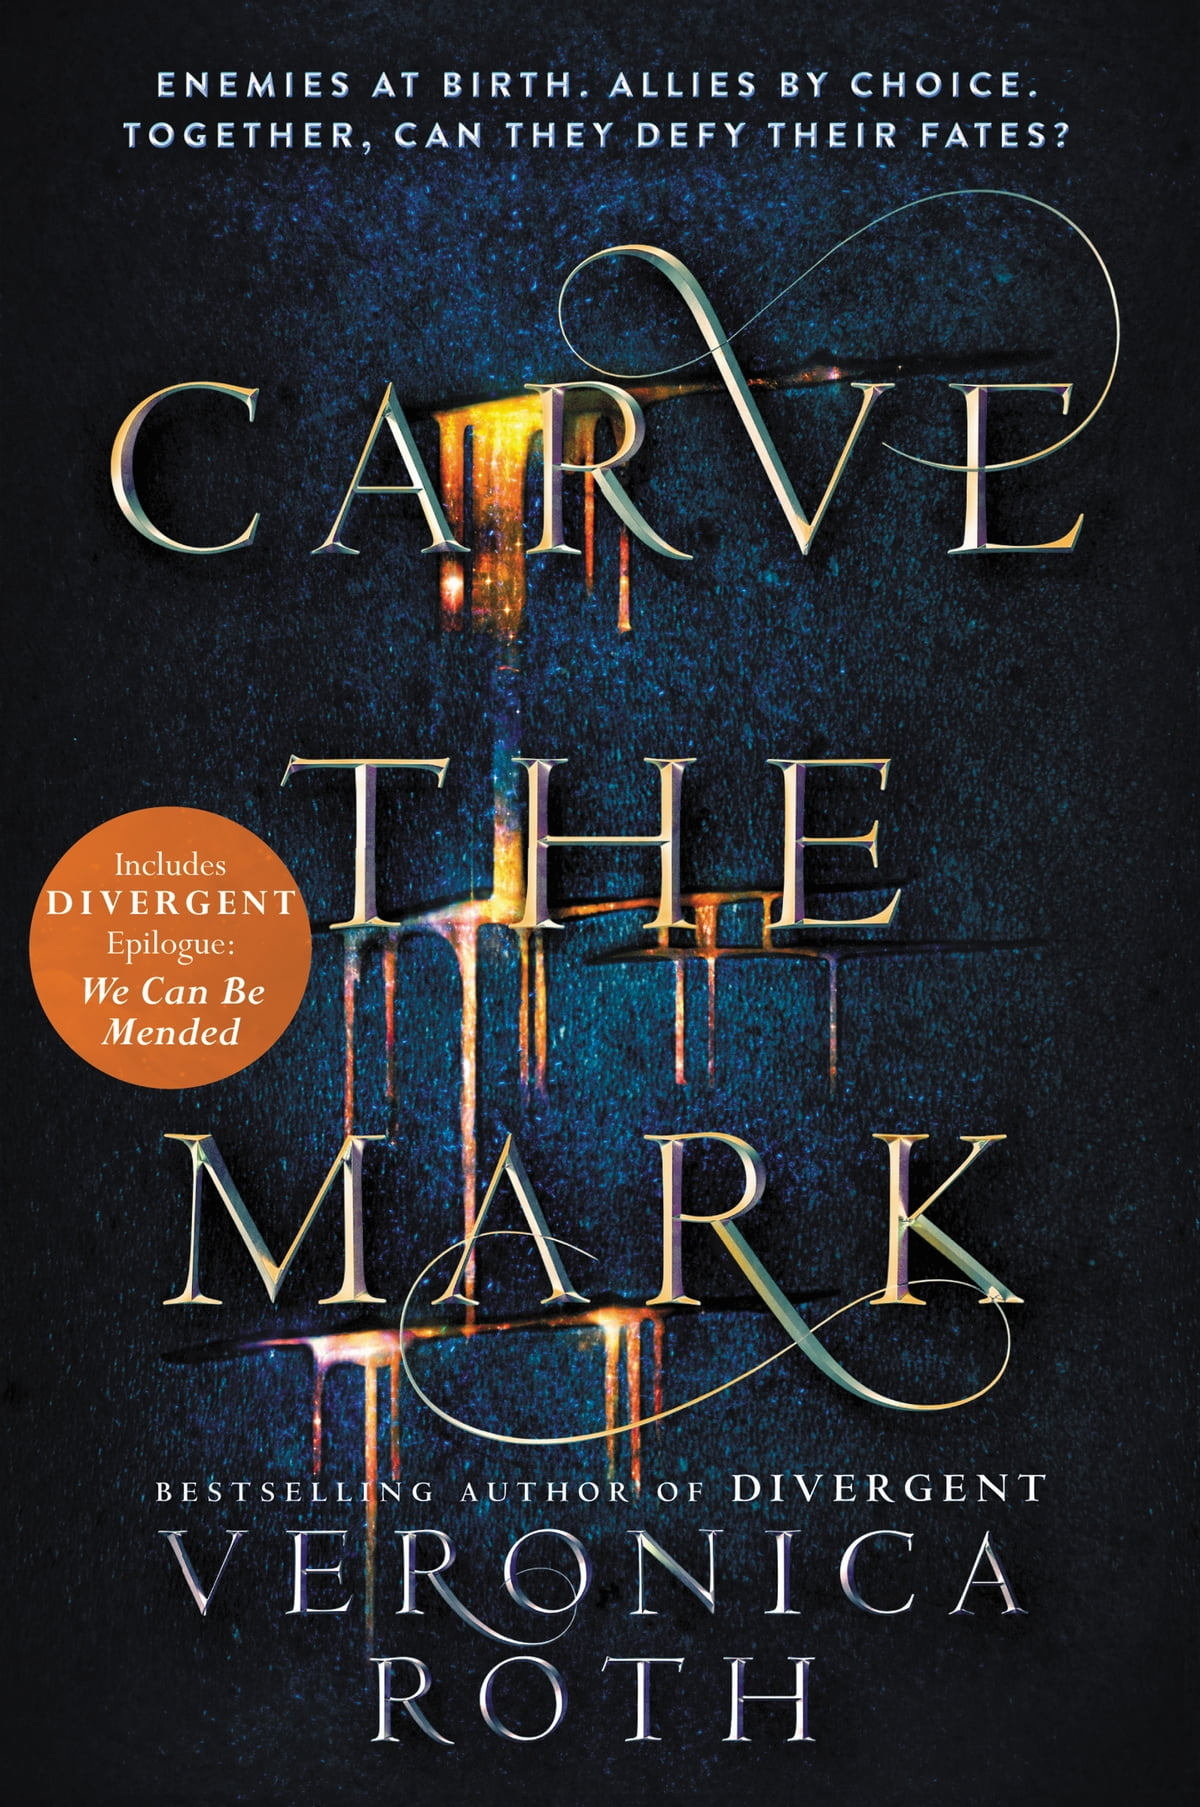 Allegiant ebook by veronica roth 9780062209276 rakuten kobo carve the mark ebook by veronica roth fandeluxe